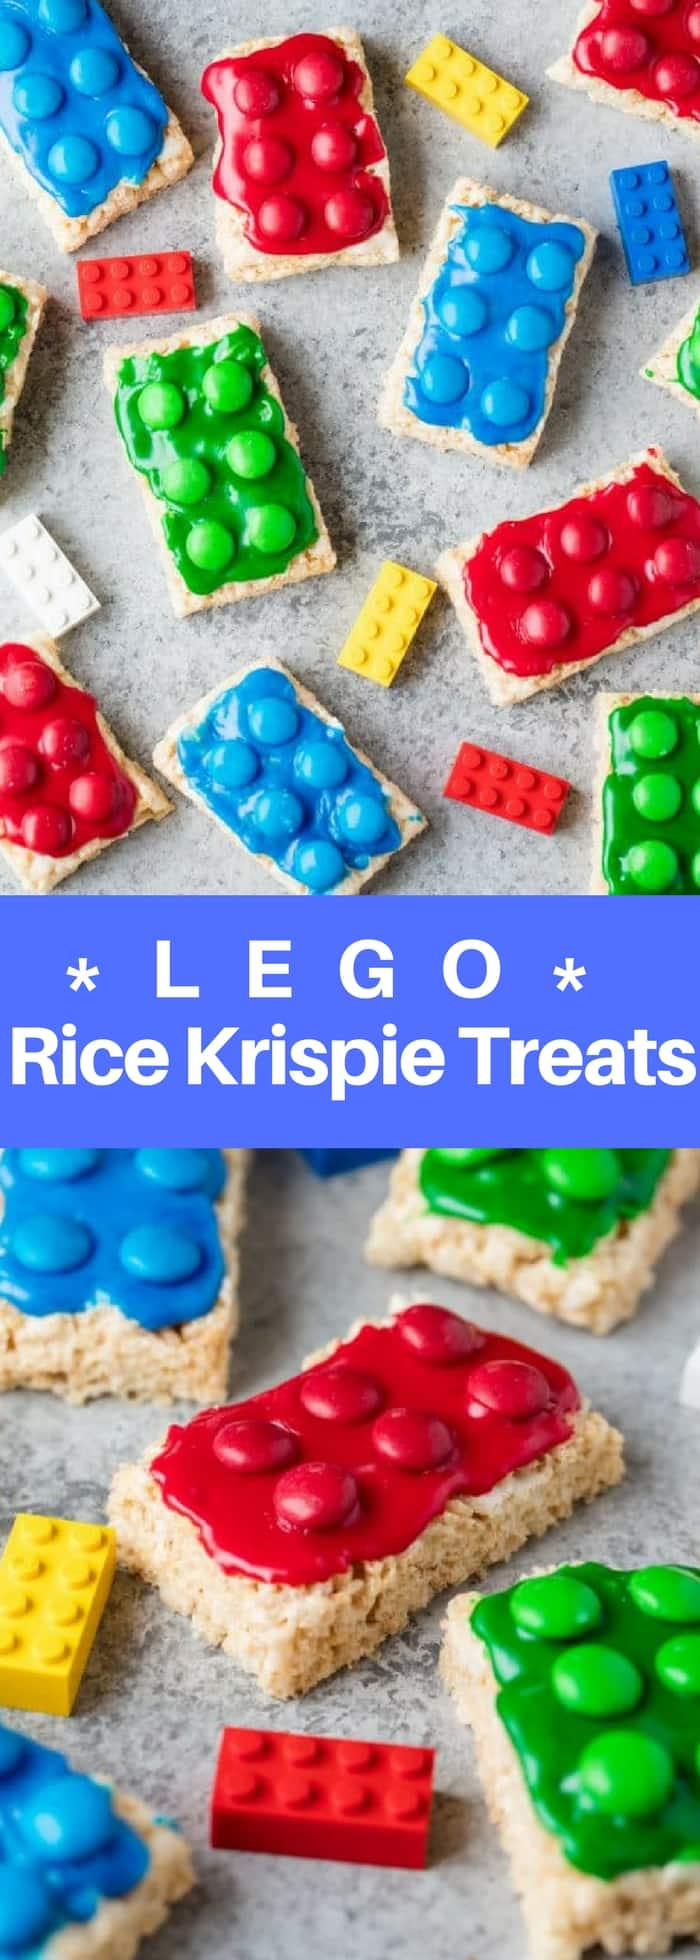 Lego Rice Krispie Treats are easy to make for your Lego lover. Great for a Lego birthday party, Lego themed allergy friendly treat for school, or just plain fun for Lego lovers!